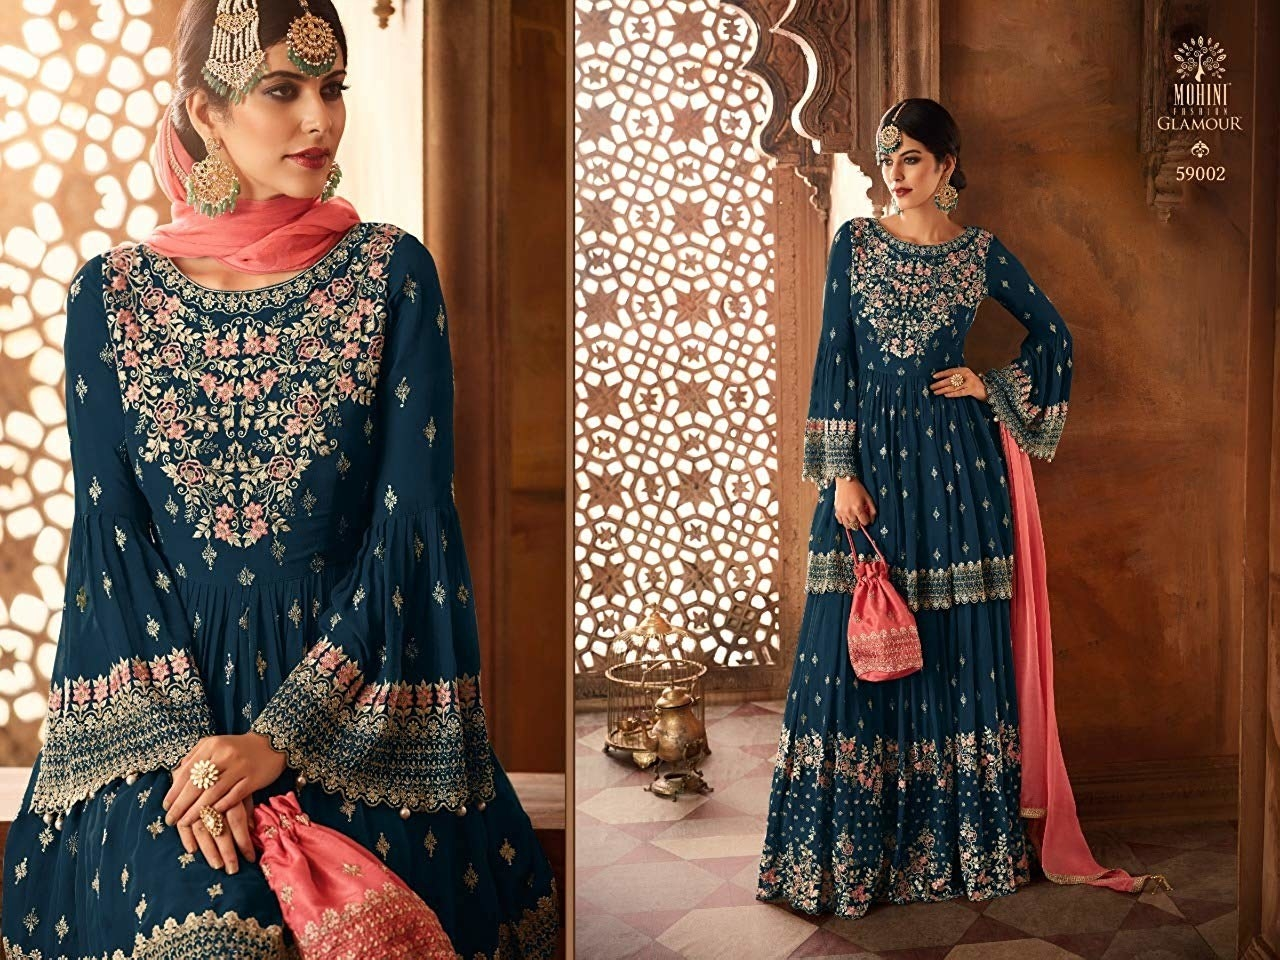 Two images of a woman side-by-side in ethnic wear, one where she's sitting and one where she's standing.